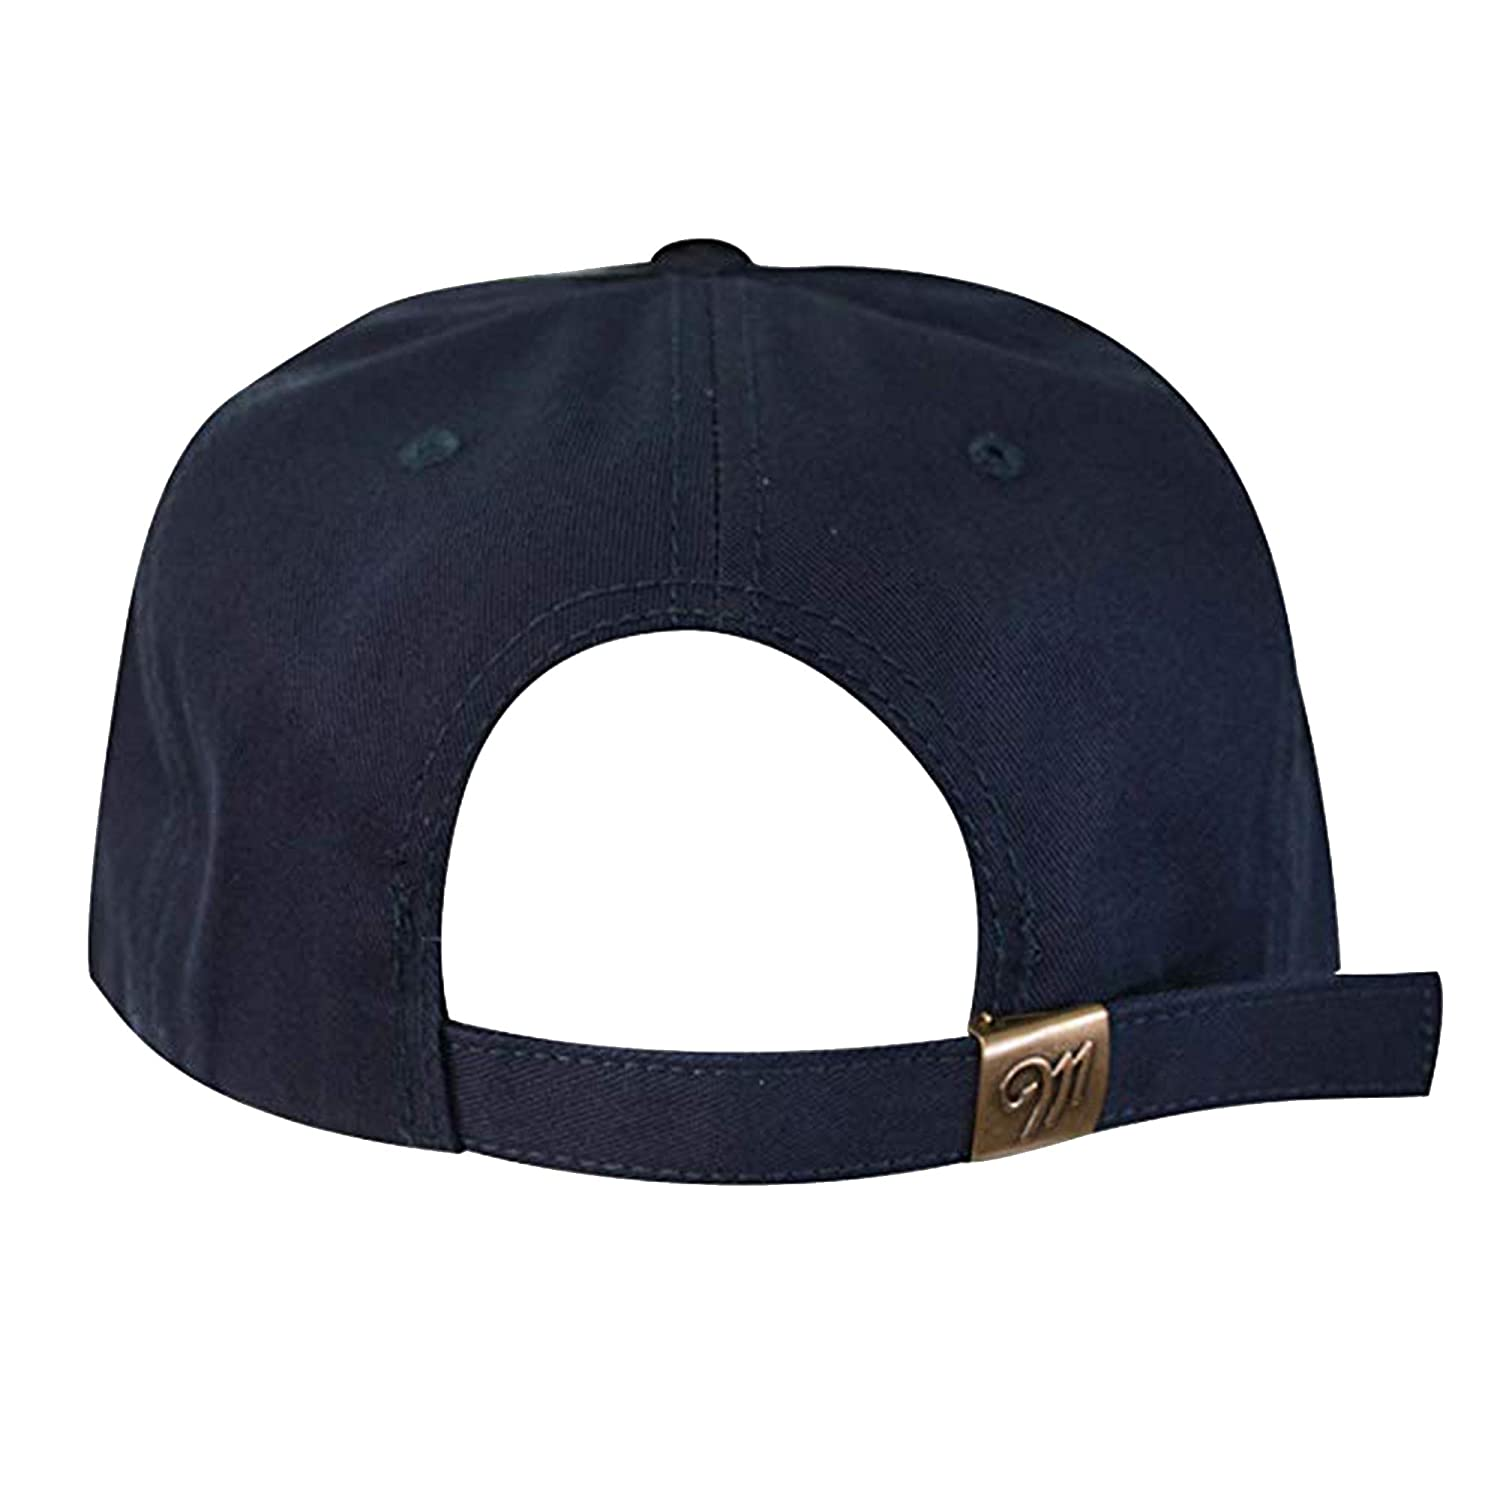 3118d2699c704 Amazon.com  Miller Lite Blue Gold White 5 Panel Flatbill Hat Standard   Clothing